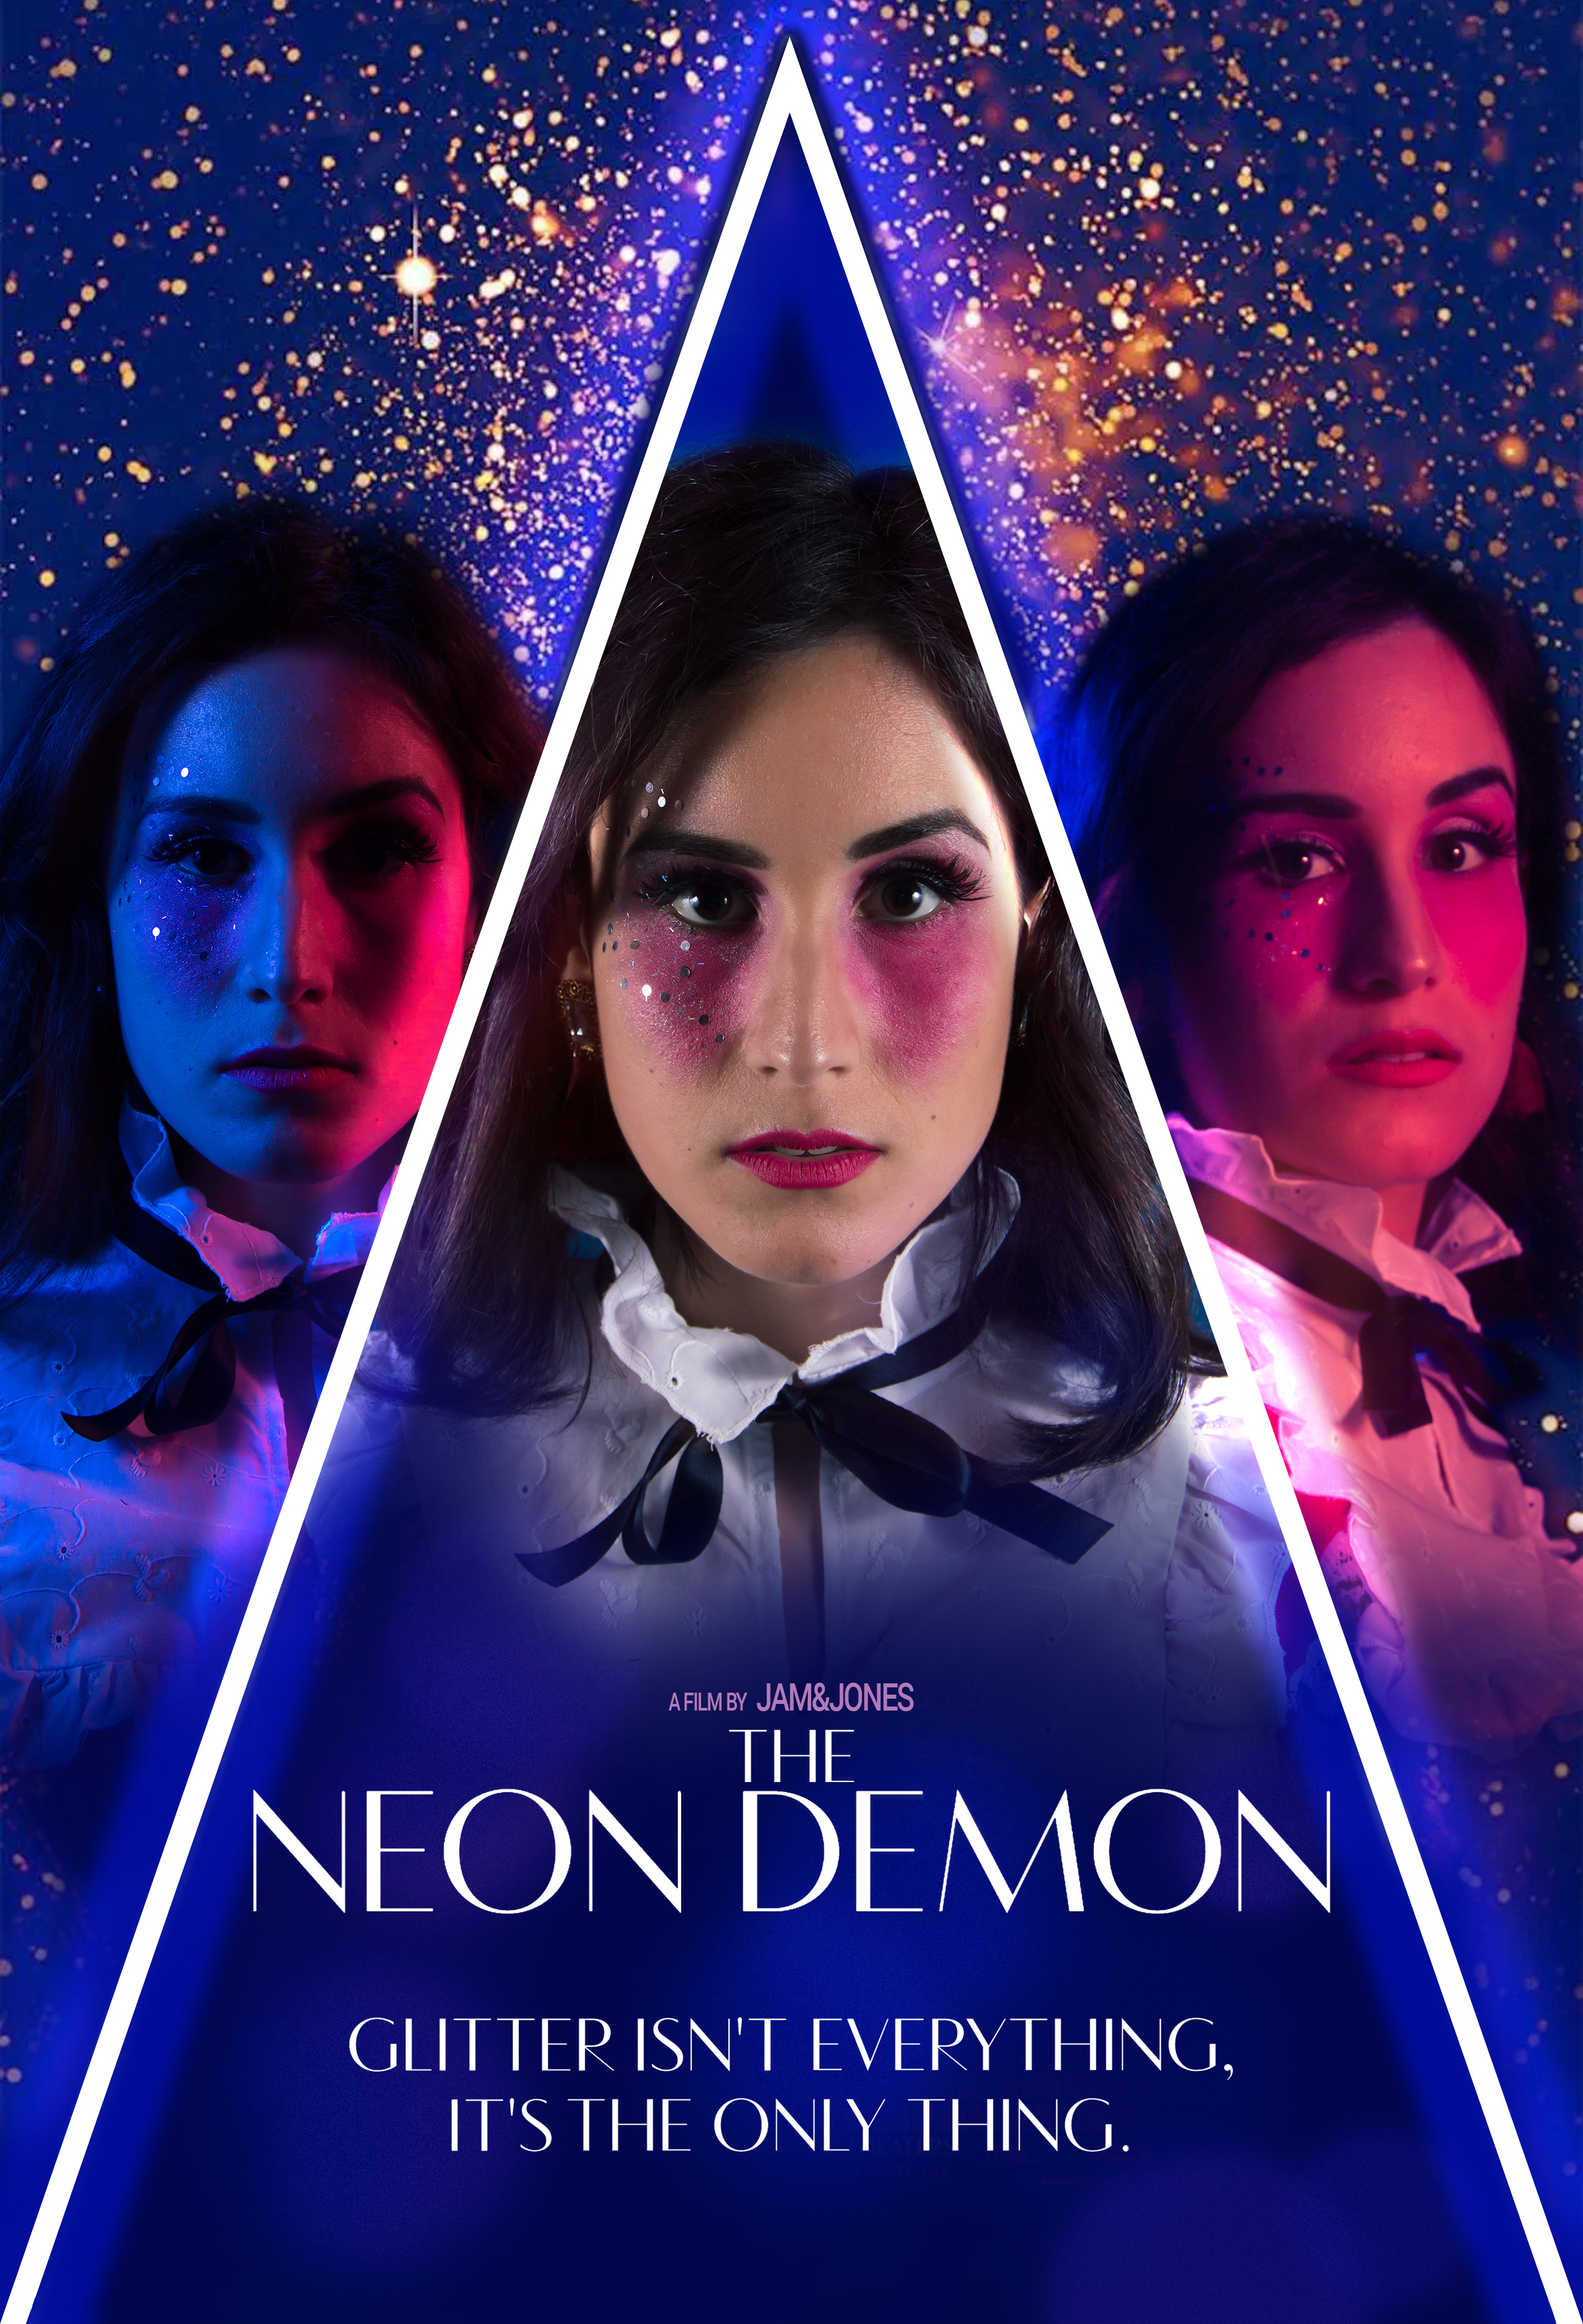 The neon demon triangle